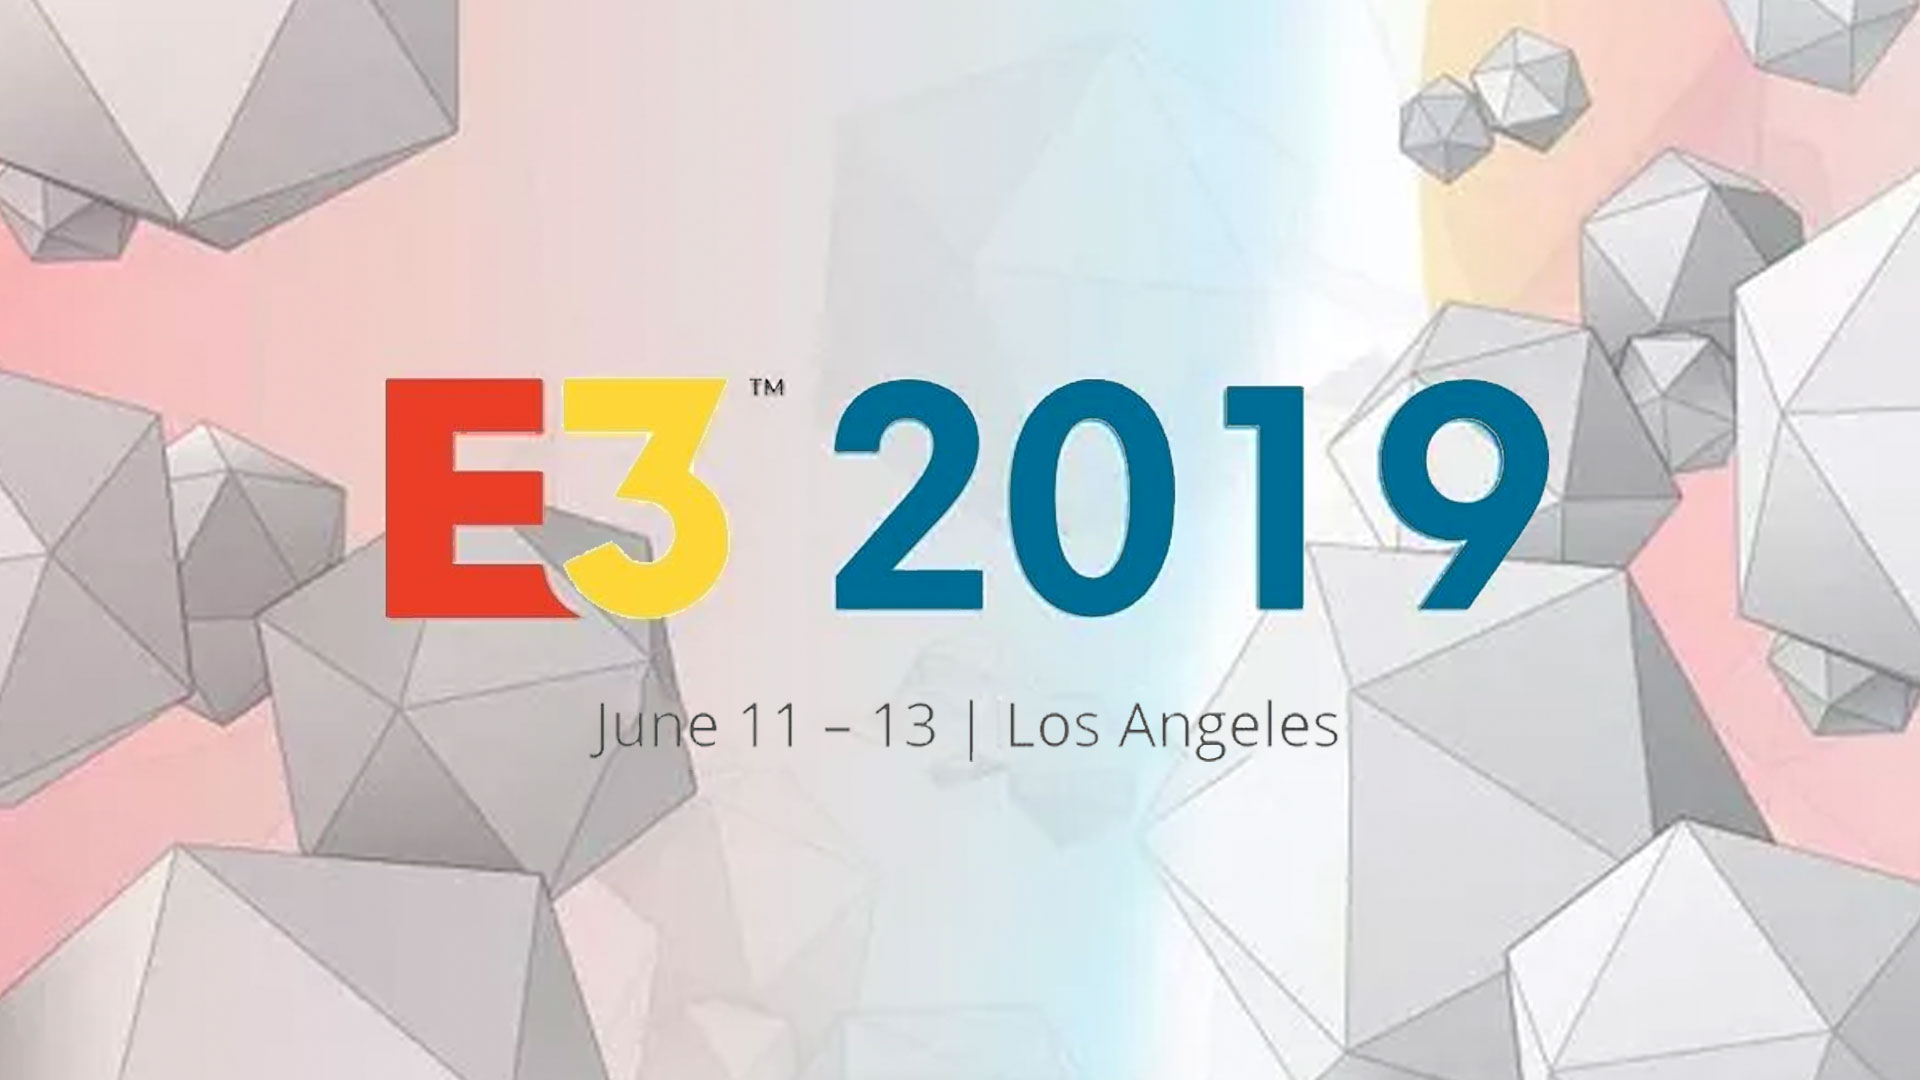 All E3 2019 Schedules, Dates, and Live Streams